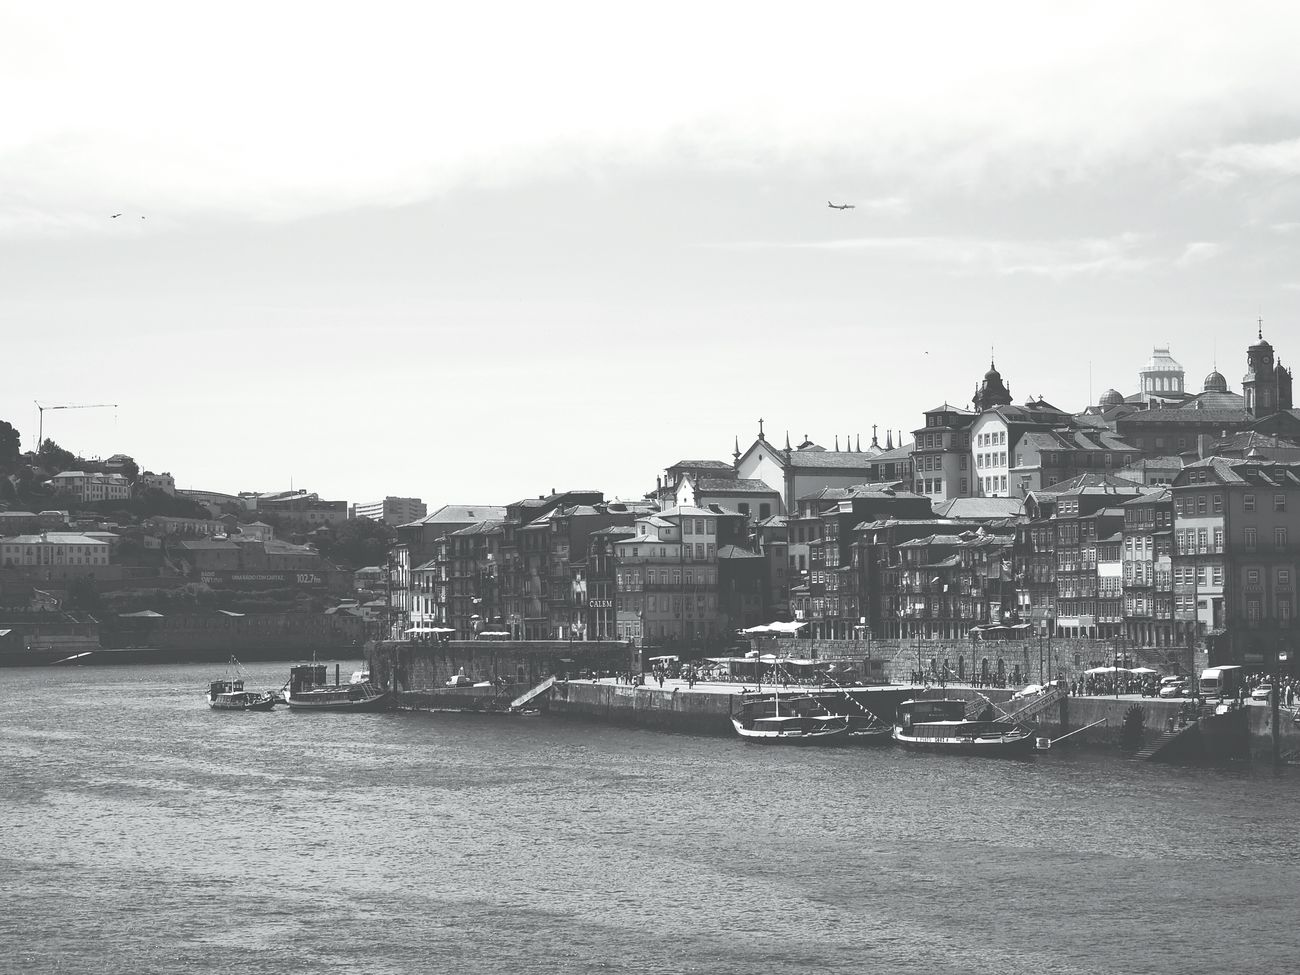 Porto view City Cityscape River Riverside Douro  Atmosphere Water Oldtown Beauty Porto Portugal South Saudade Boats Sky Outdoors Day Hill Banks Cloudy EyeEm Best Shots EyeEm Gallery Eyeemphotography Architecture